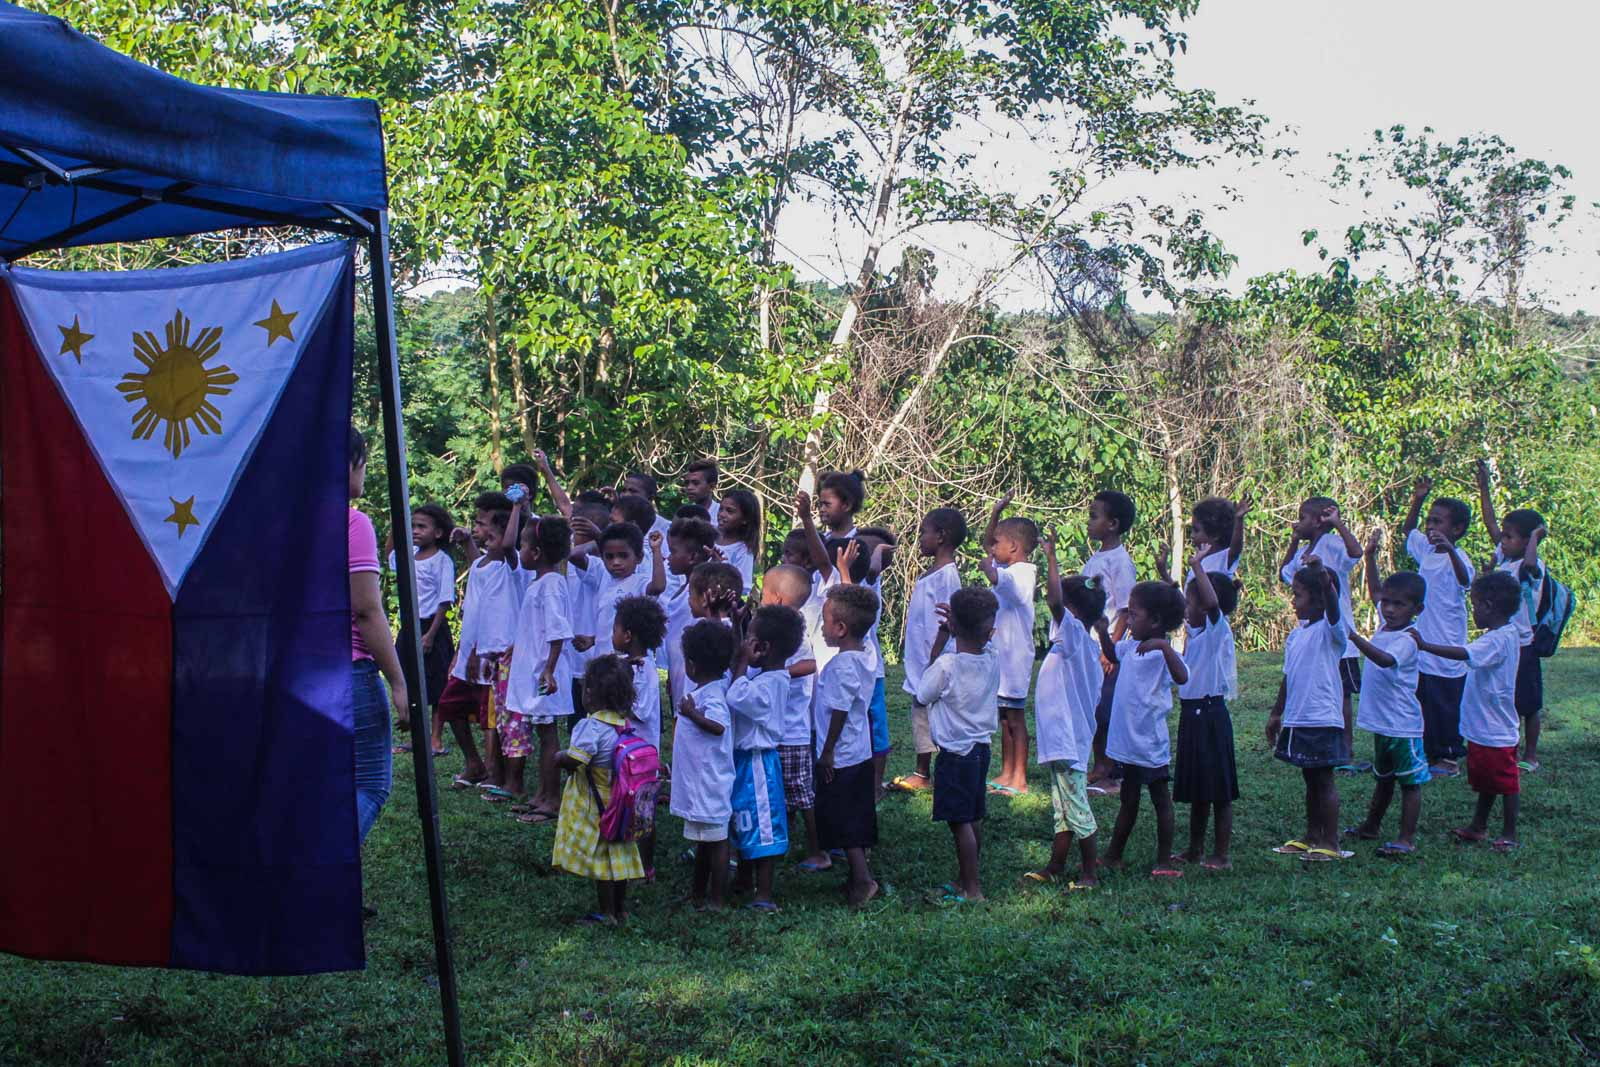 FLAG CEREMONY. Aeta students of the Diaz Elementary School in Porac, Pampanga will be spending their classes in tents after their regular classrooms were destroyed by an earthquake last April. Photo by Lito Borras/Rappler